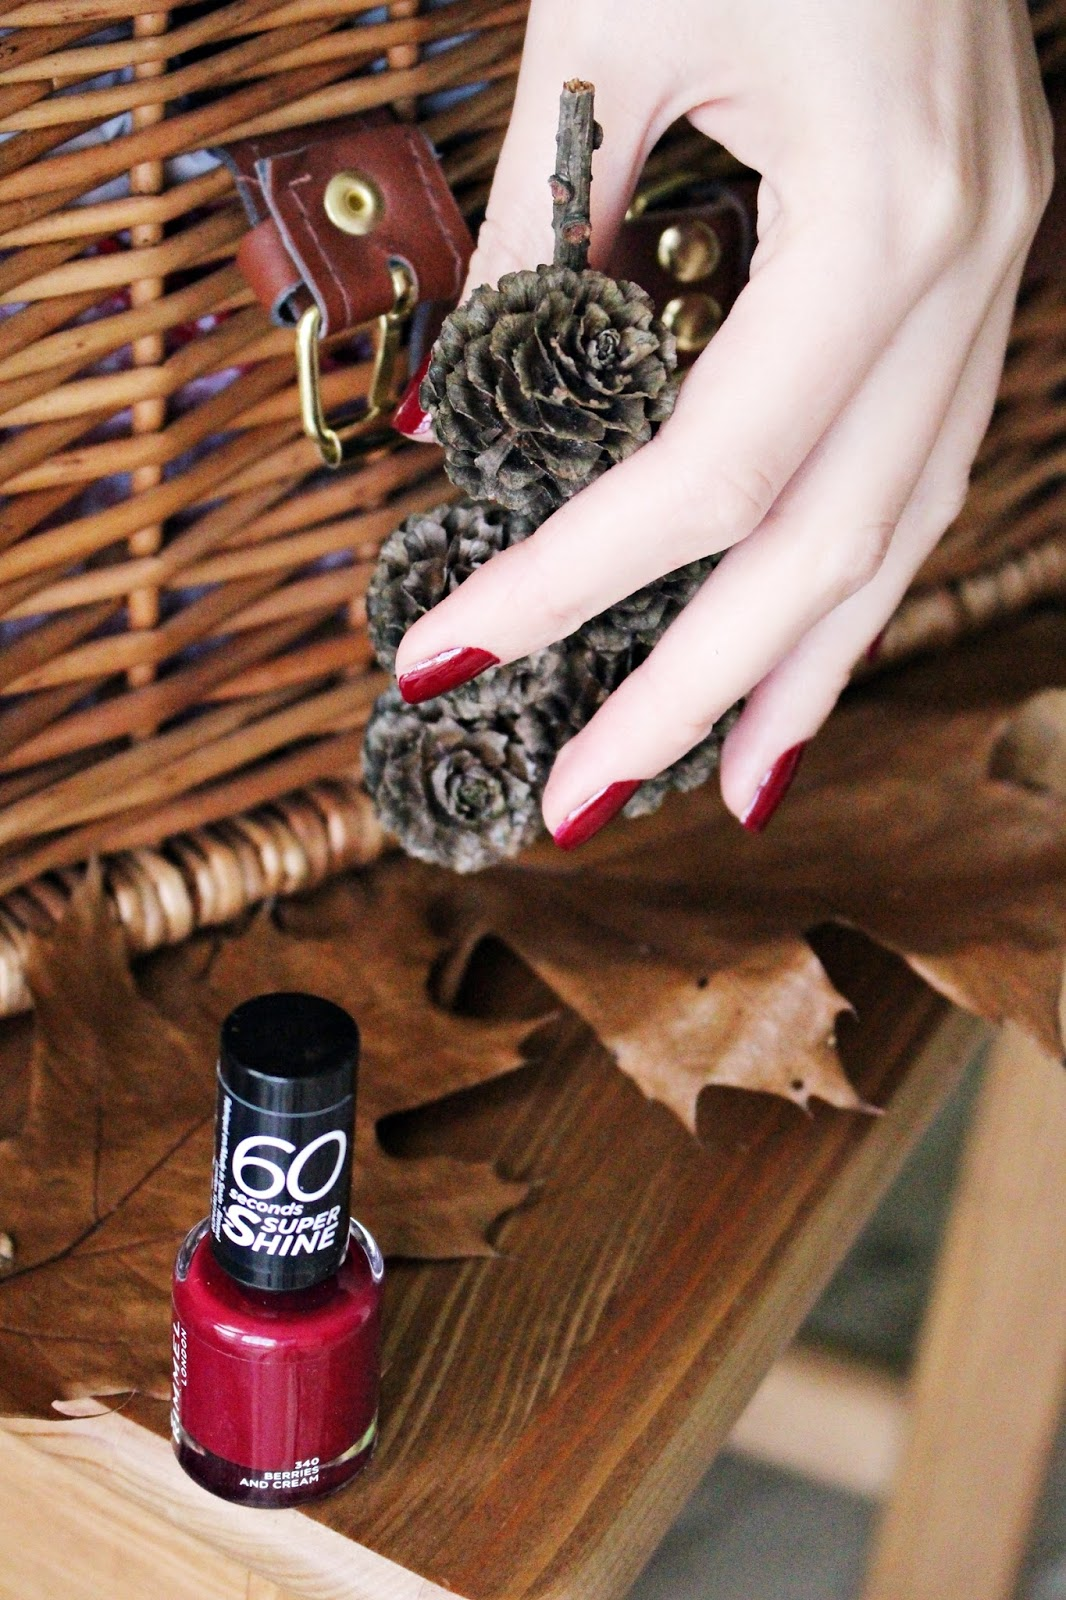 Rimmel London 60 Seconds Super Shine, 340 Berries and Cream